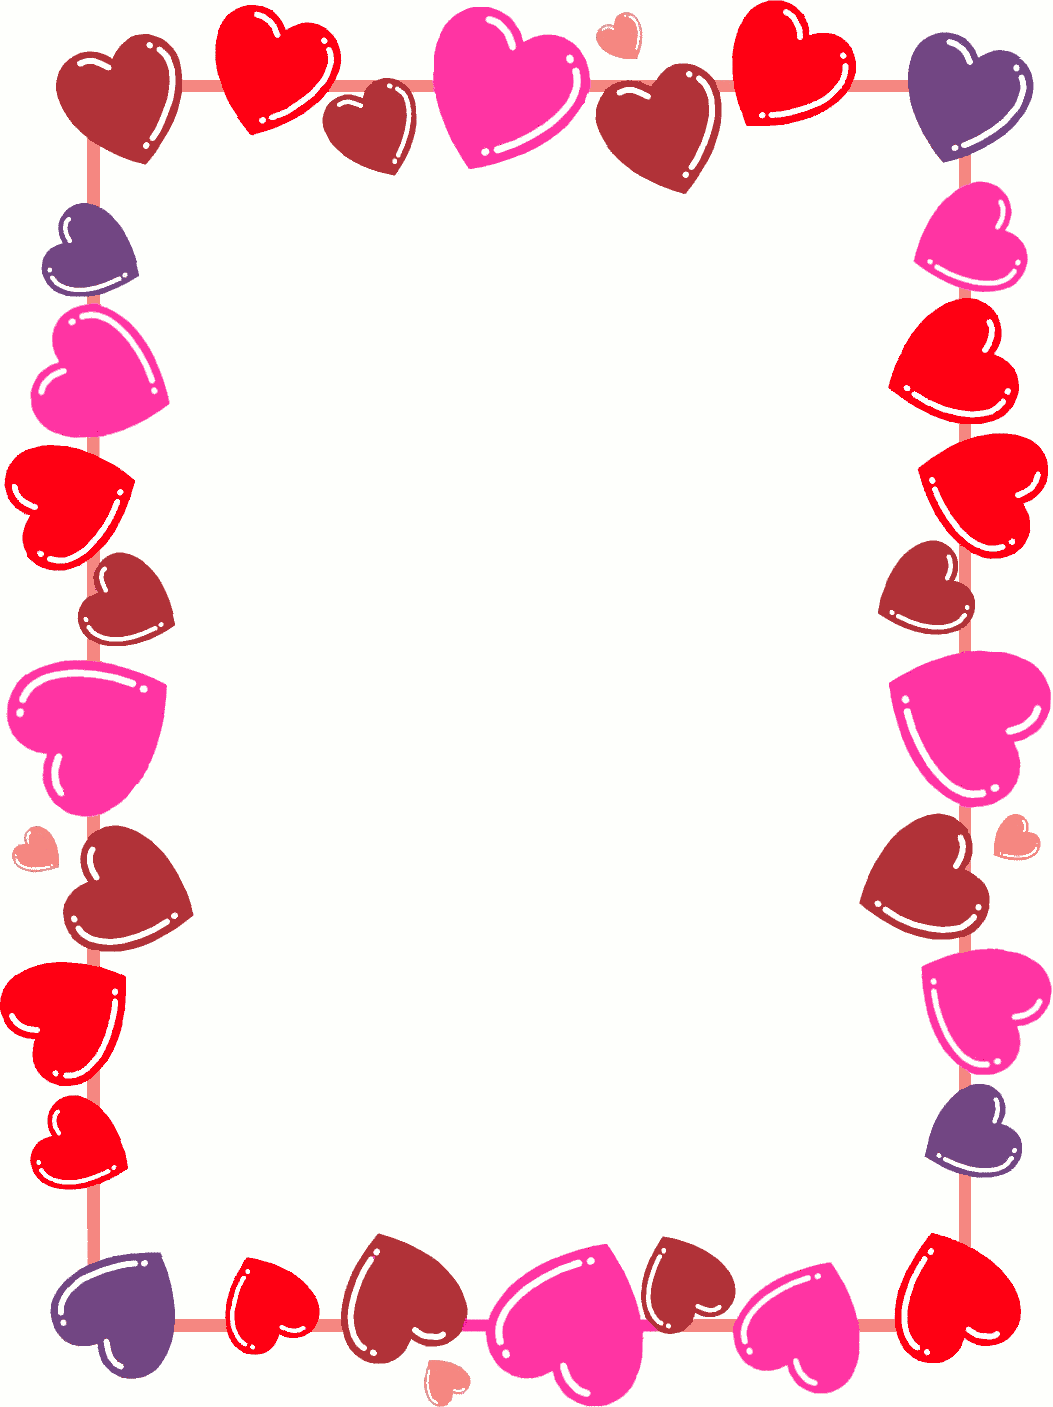 February clipart group heart. Page border free borders